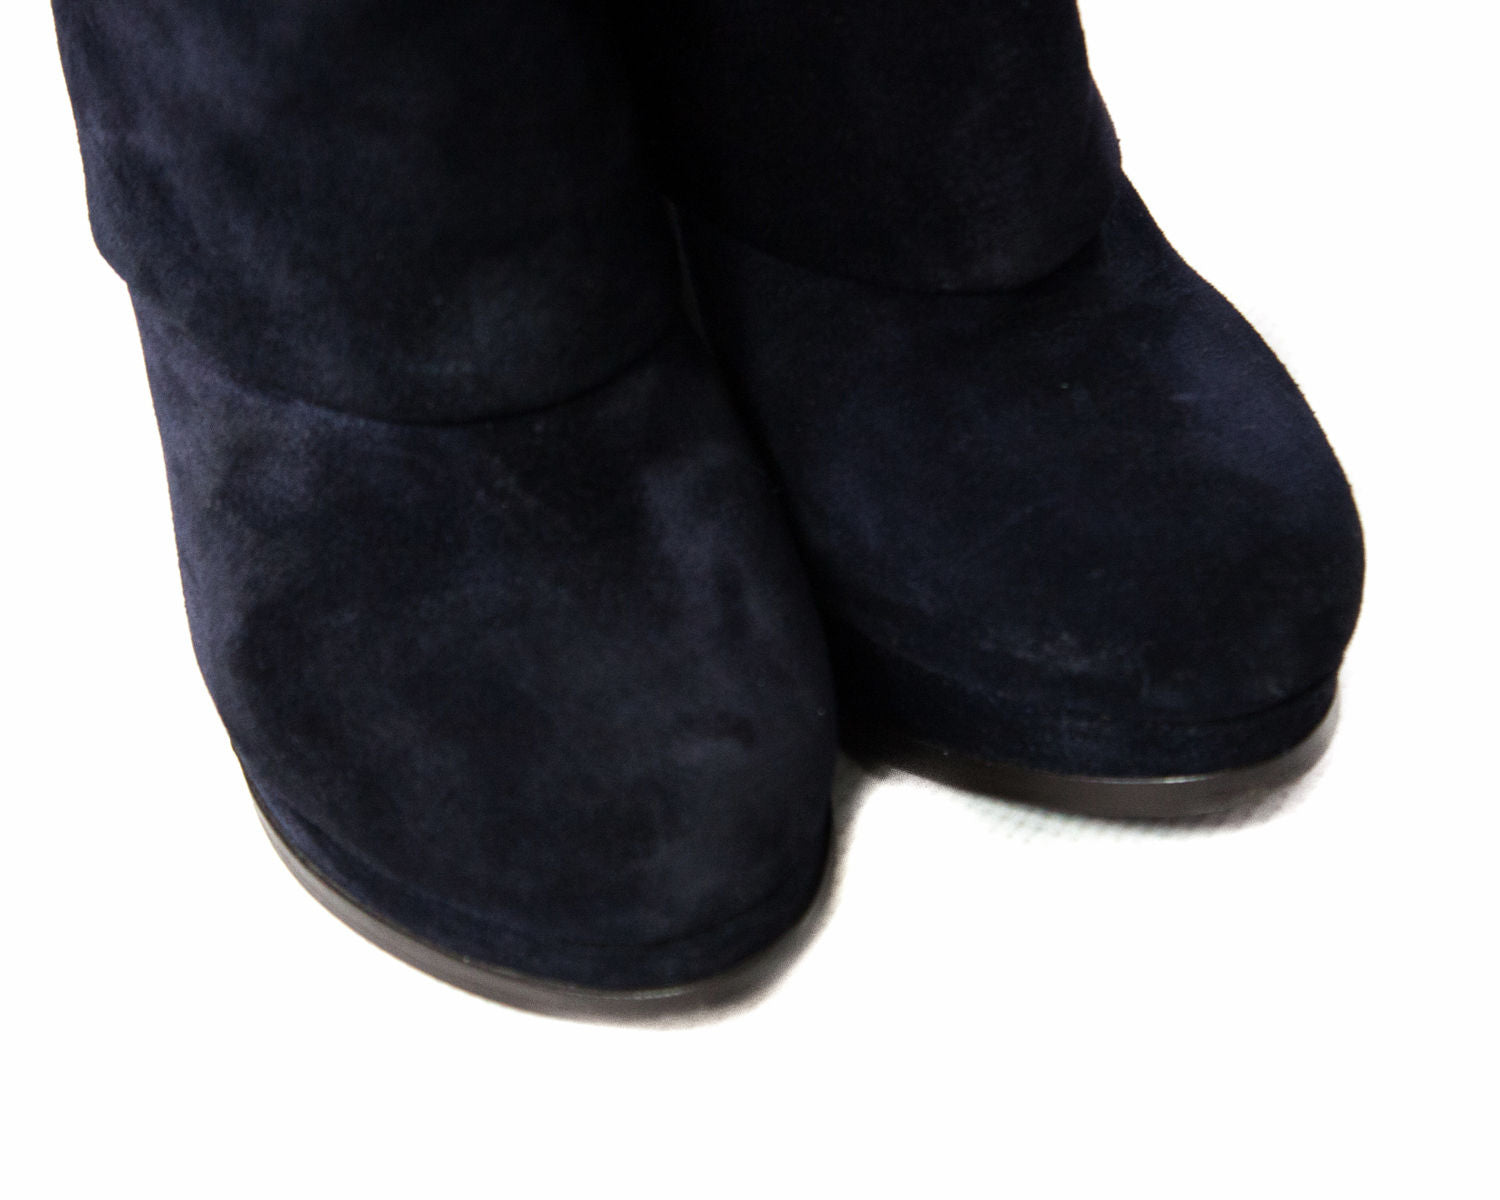 ASH Fold Over Suede Ankle Booties Heels, EU 36/UK 3.5/US 6 - secondfirst